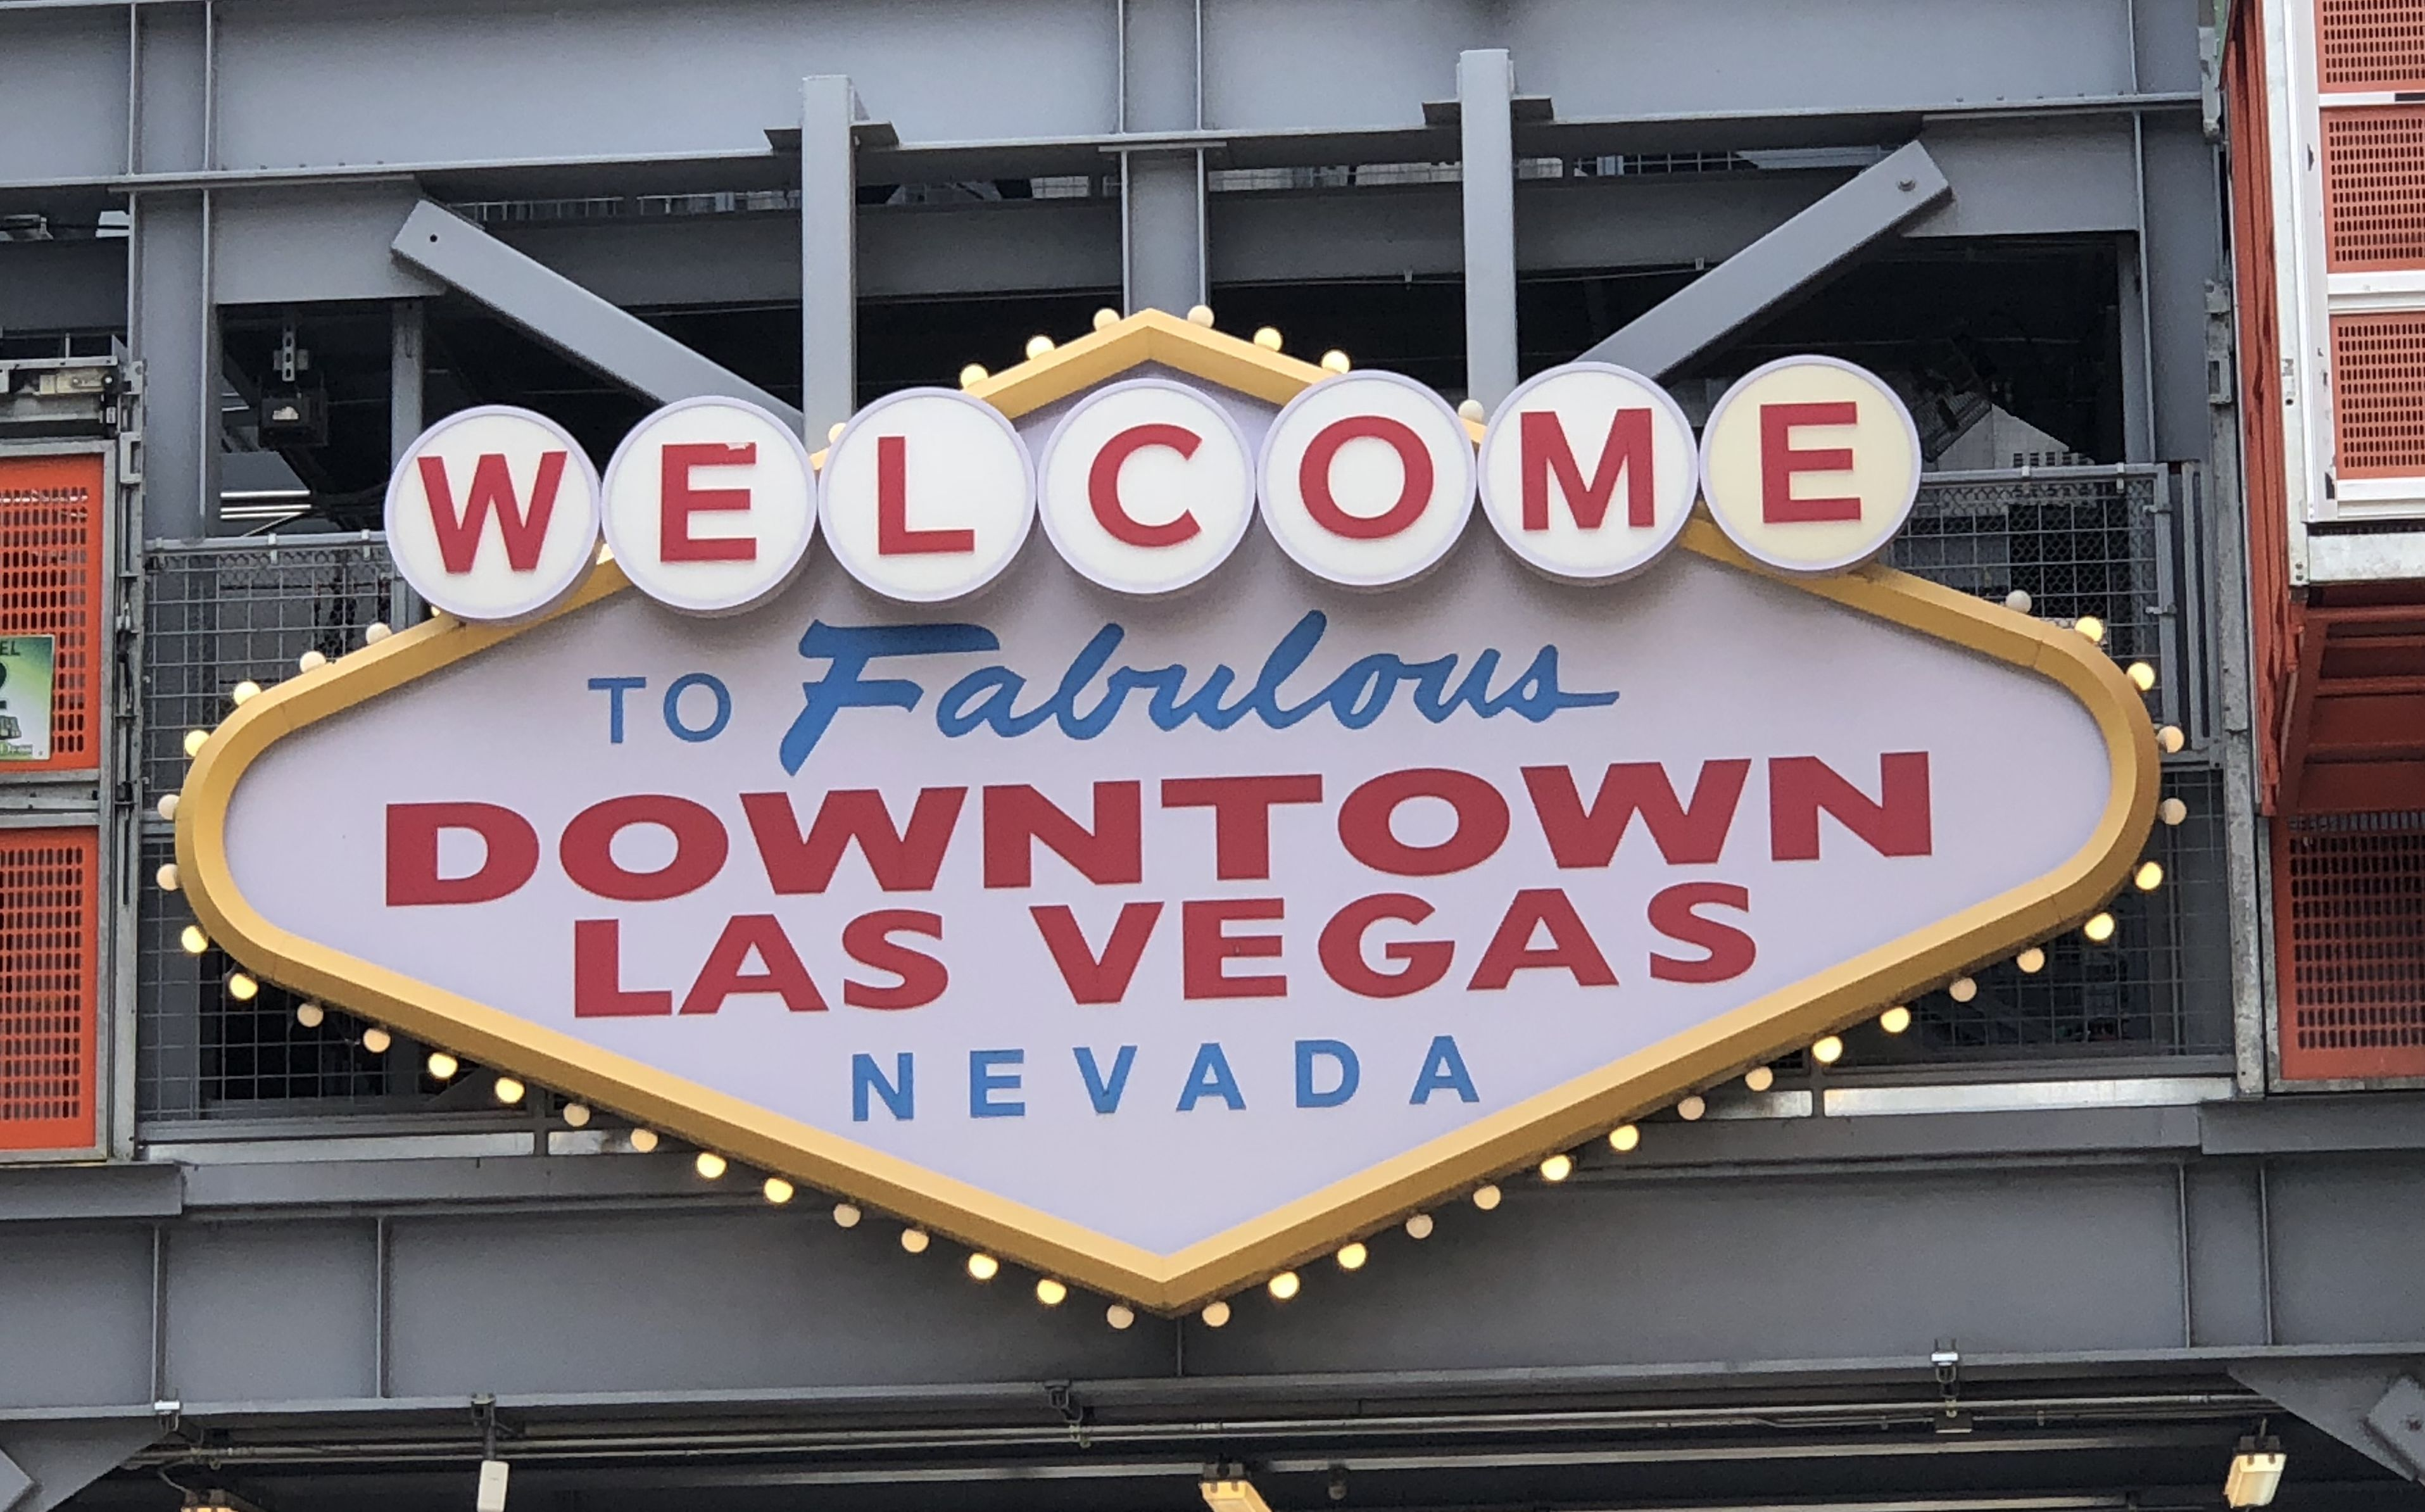 9 Vegas tips and tricks for first-timers and veterans alike